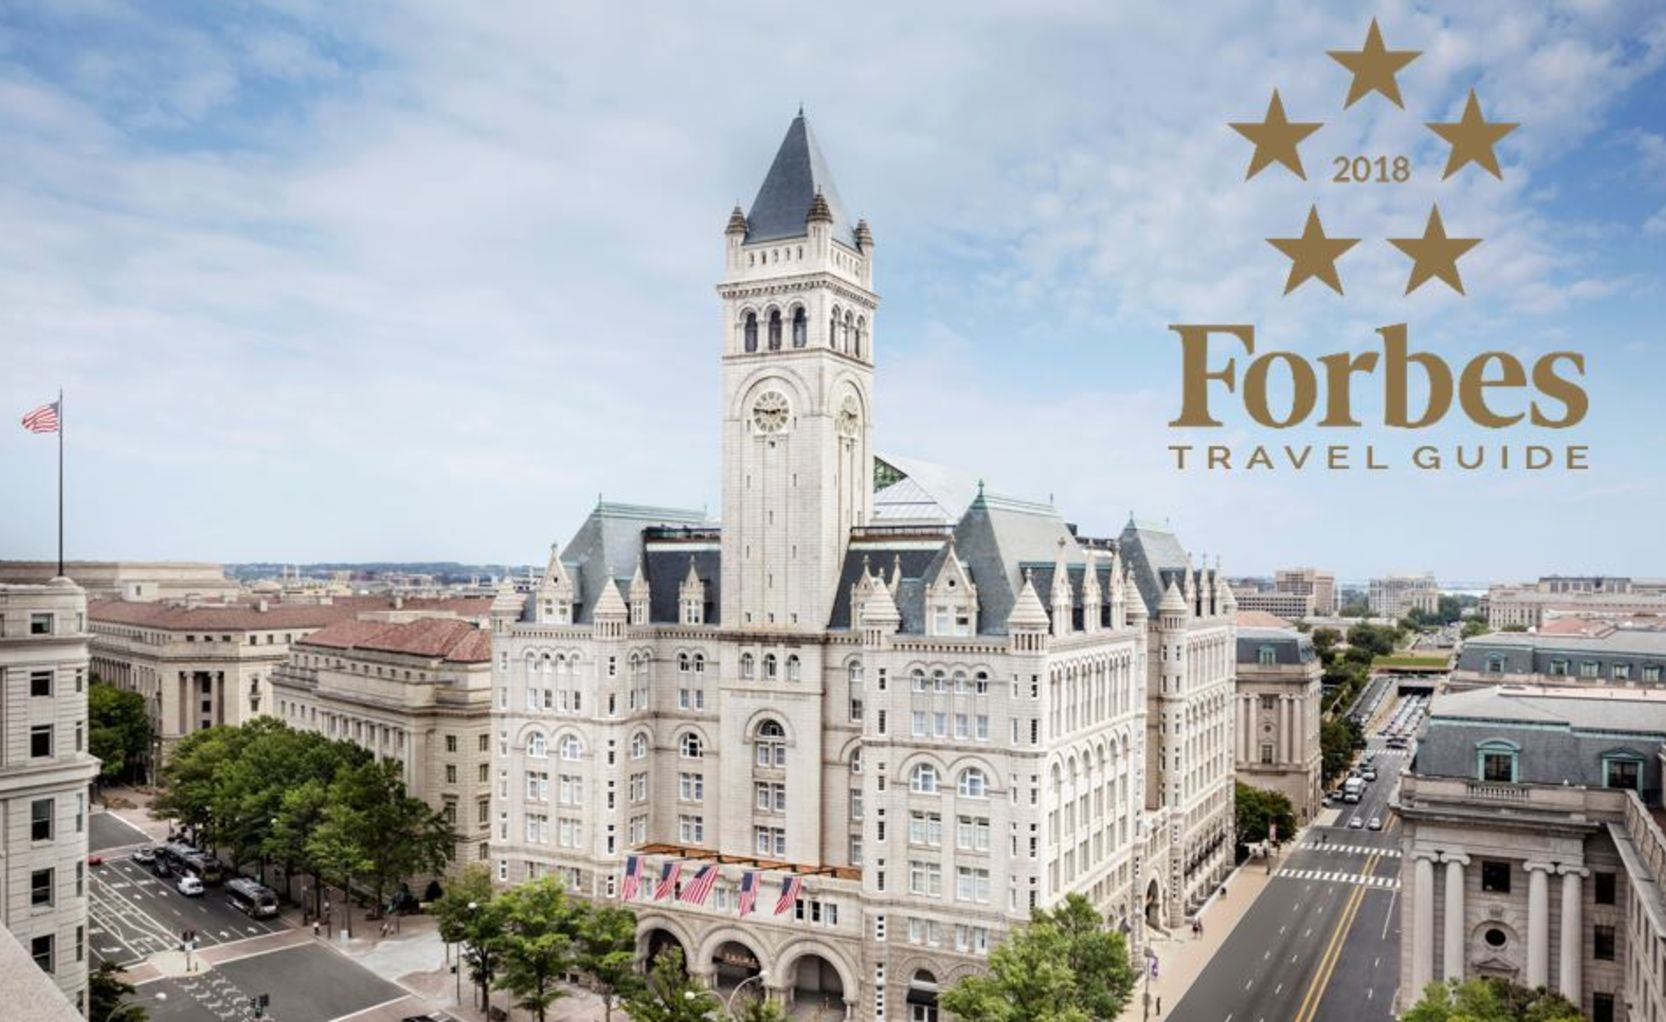 Hotel Exterior With Forbes Travel Guide Award